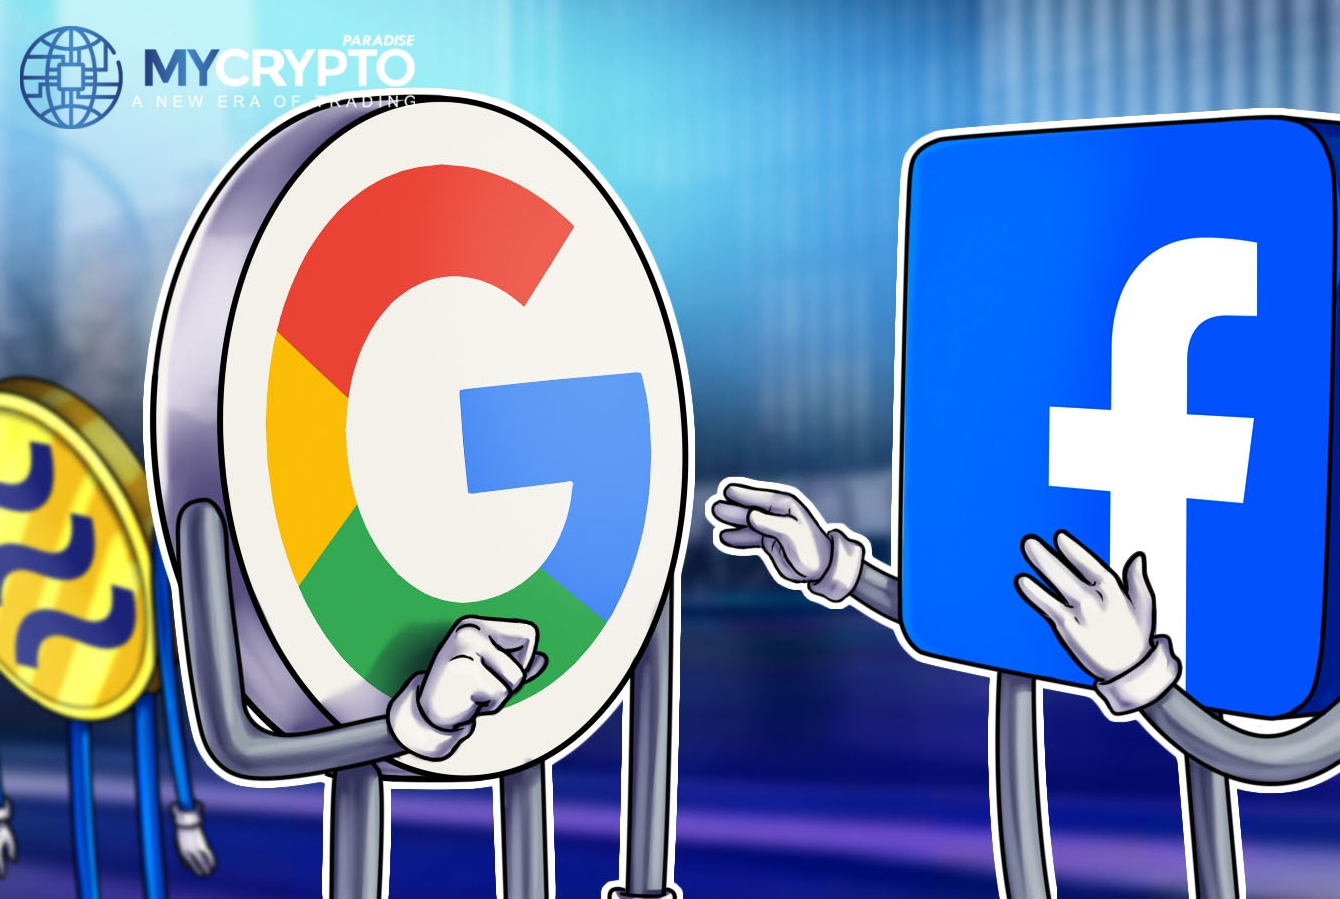 Facebook and Google to adopt bitcoin payment services after PayPal